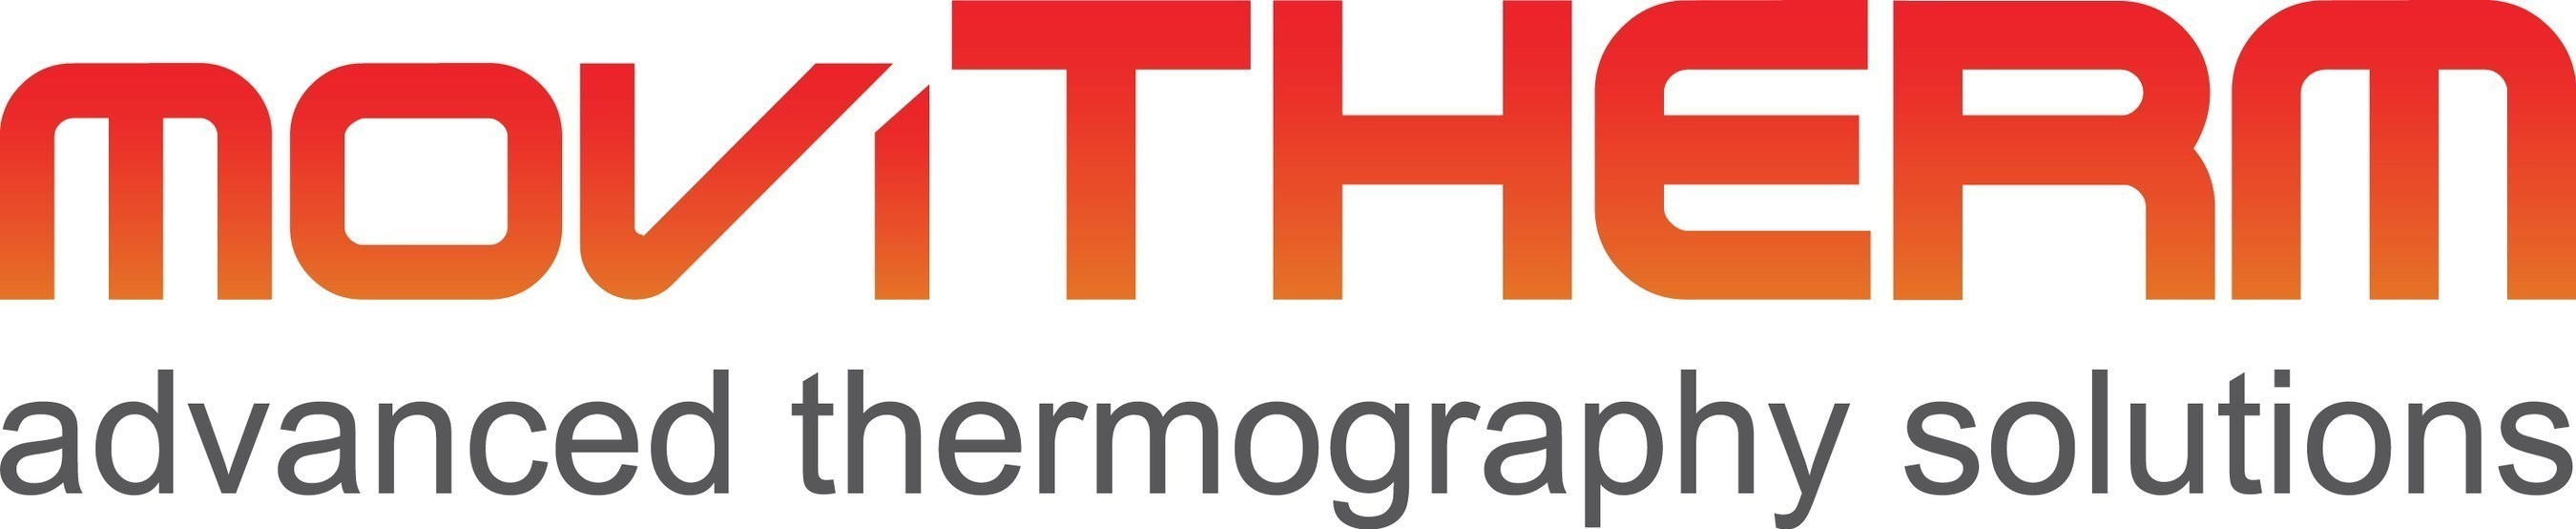 MoviTHERM Advanced Thermography Solutions